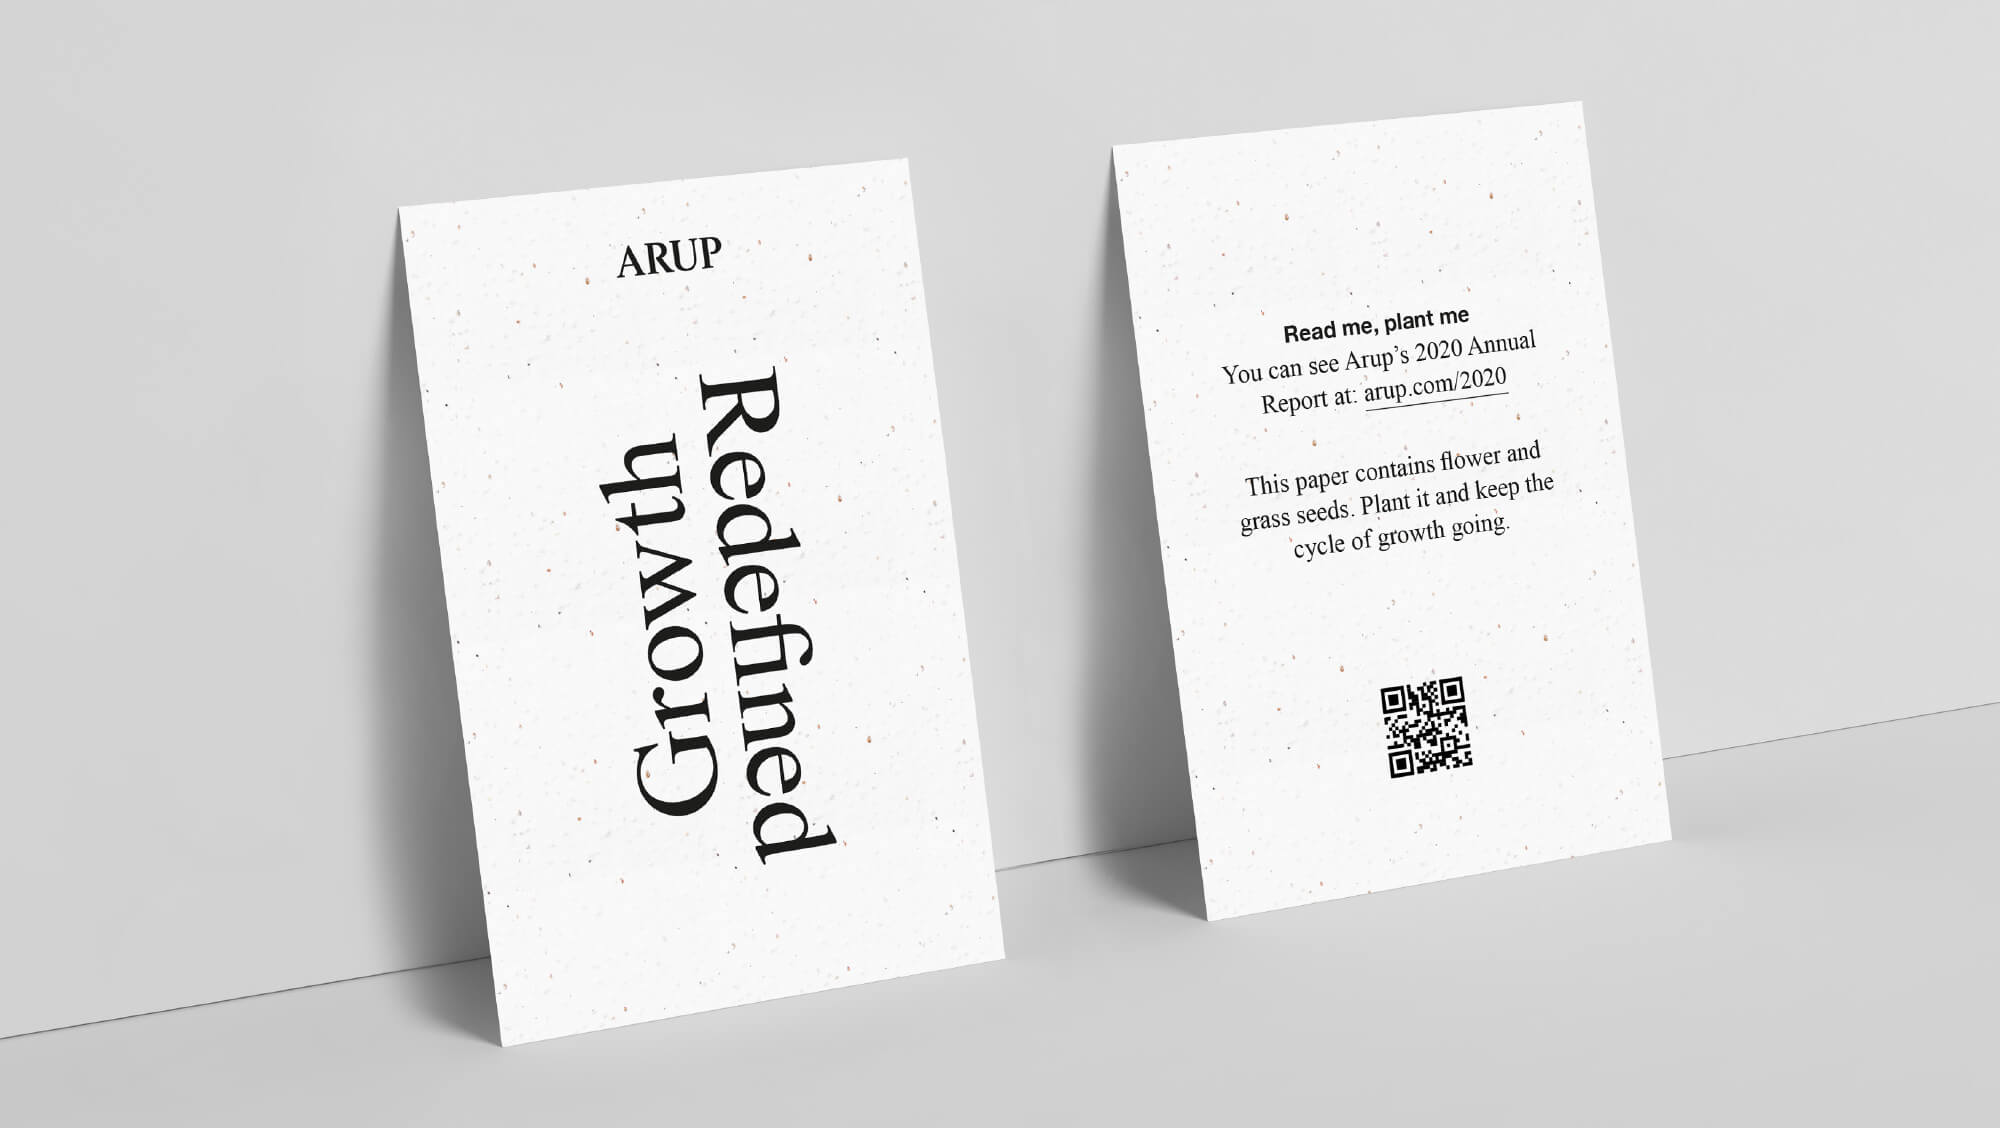 04_Arup_Cards